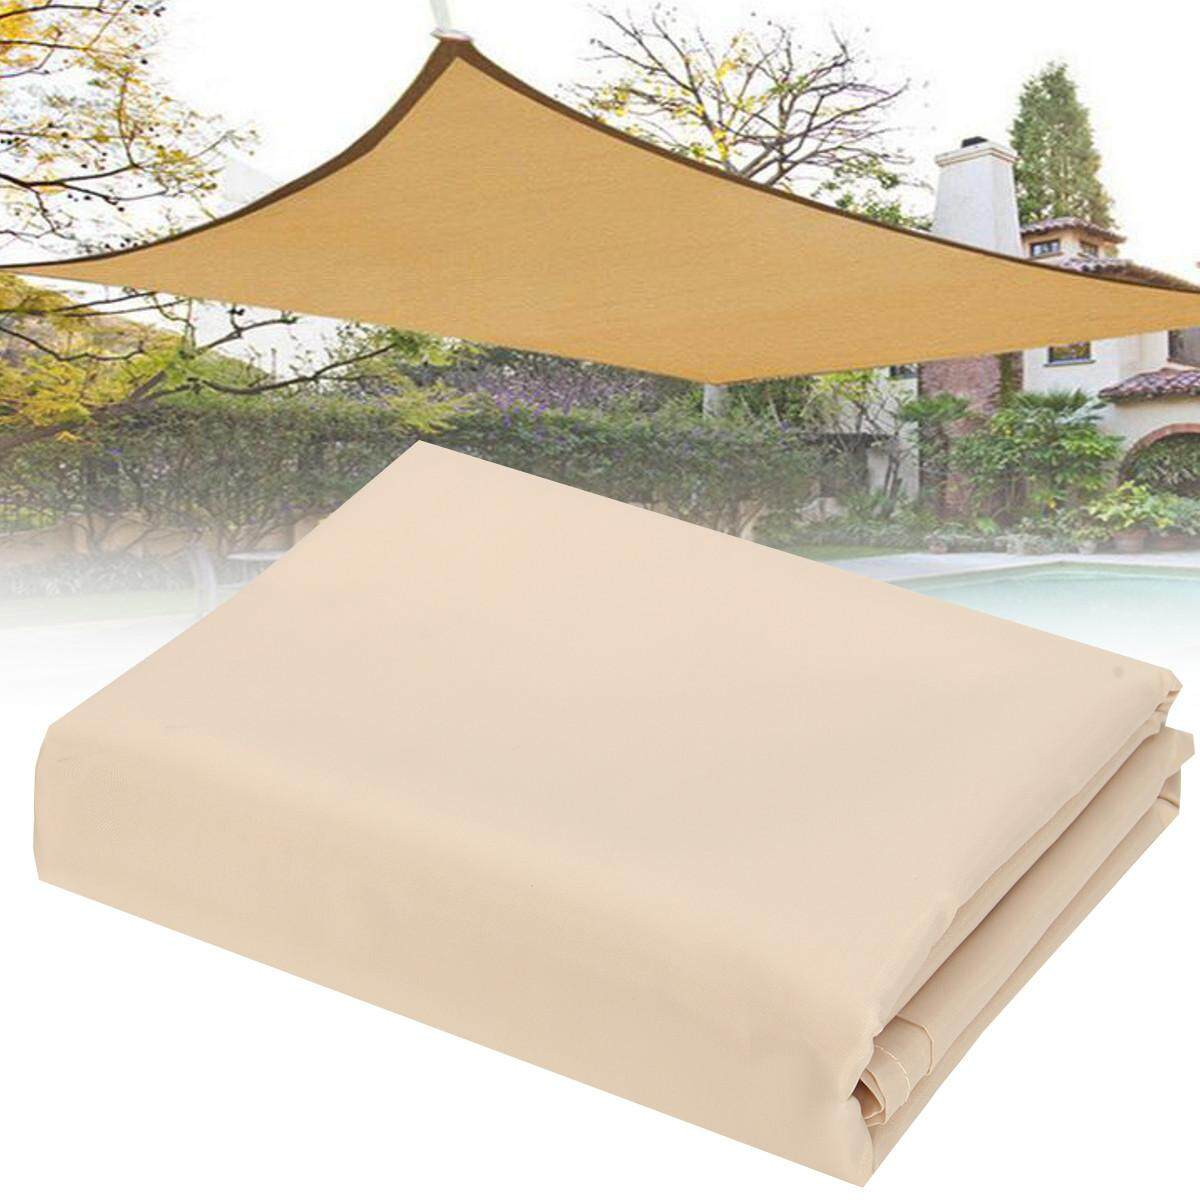 79x71 Sun Shade Sail Net Outdoor Garden Plant Cover Canopy Awning Size US